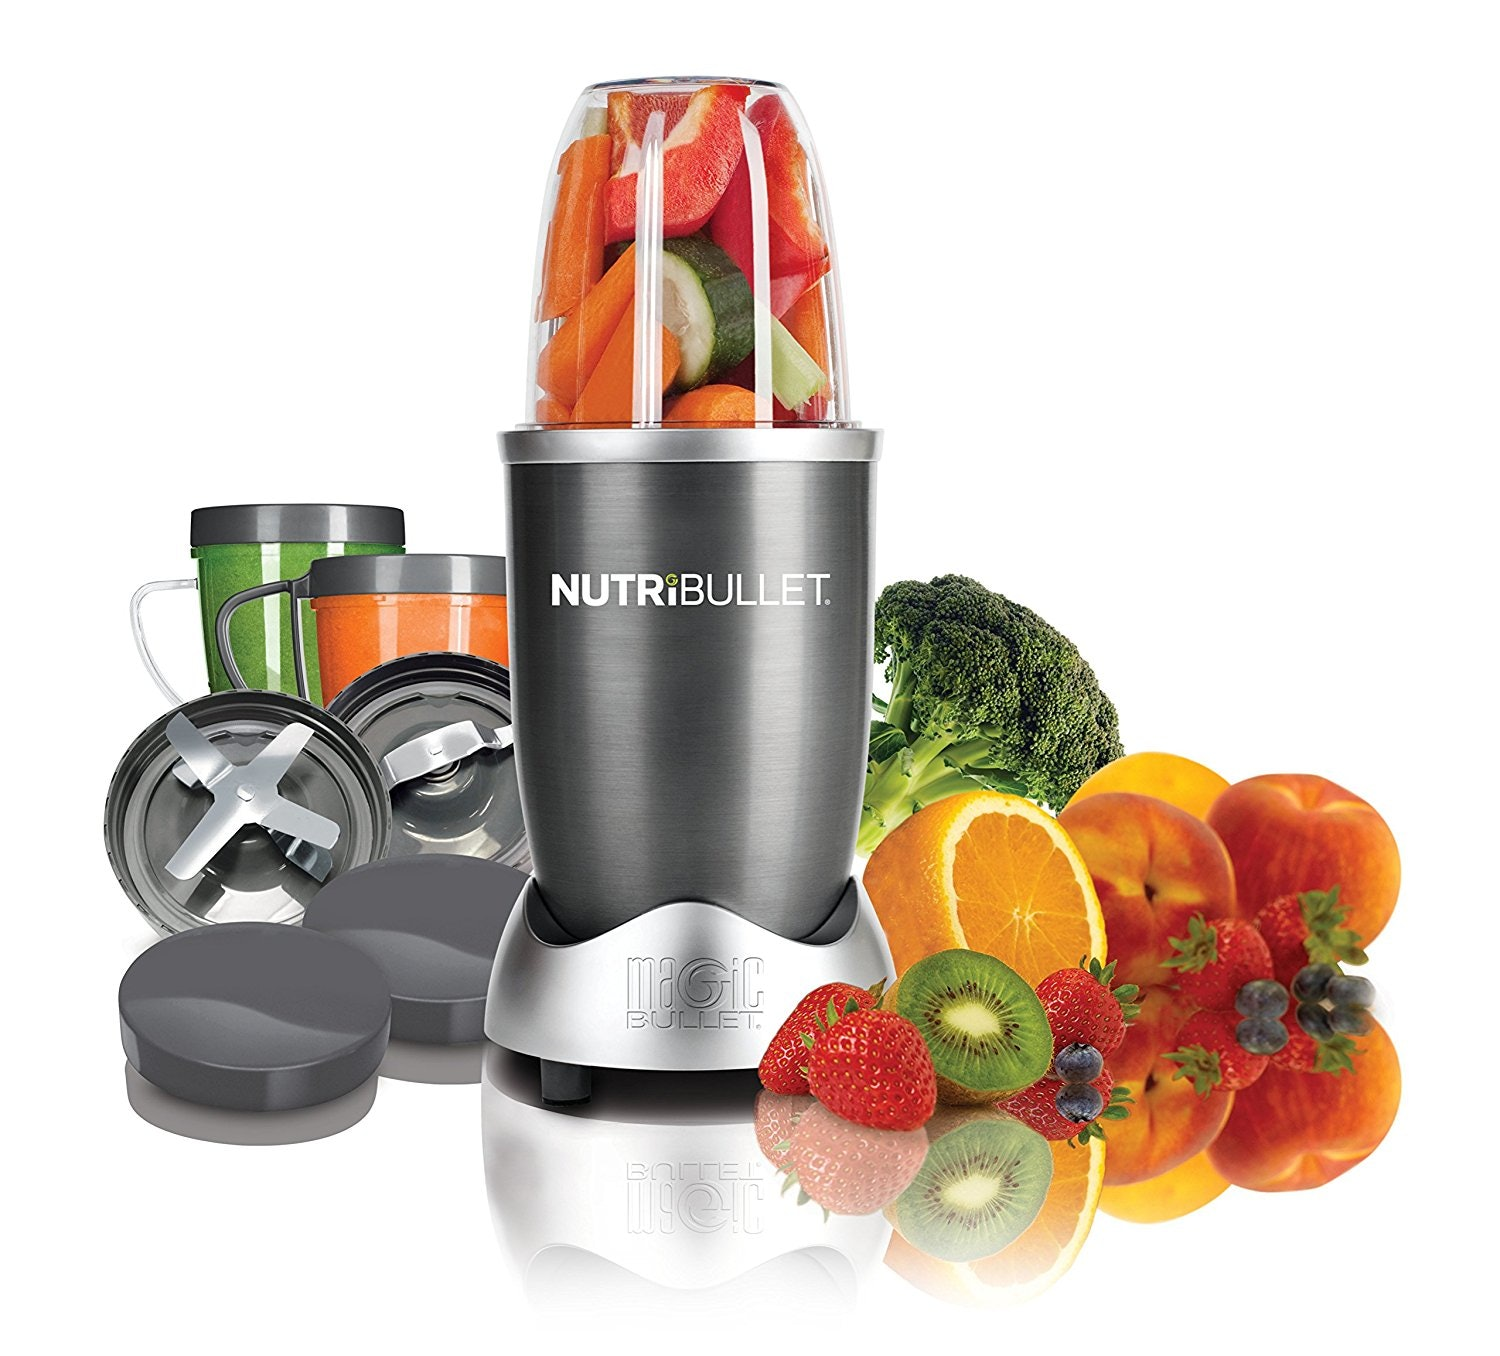 People Say This Popular Blender Is Exploding And Giving Them Serious Injuries